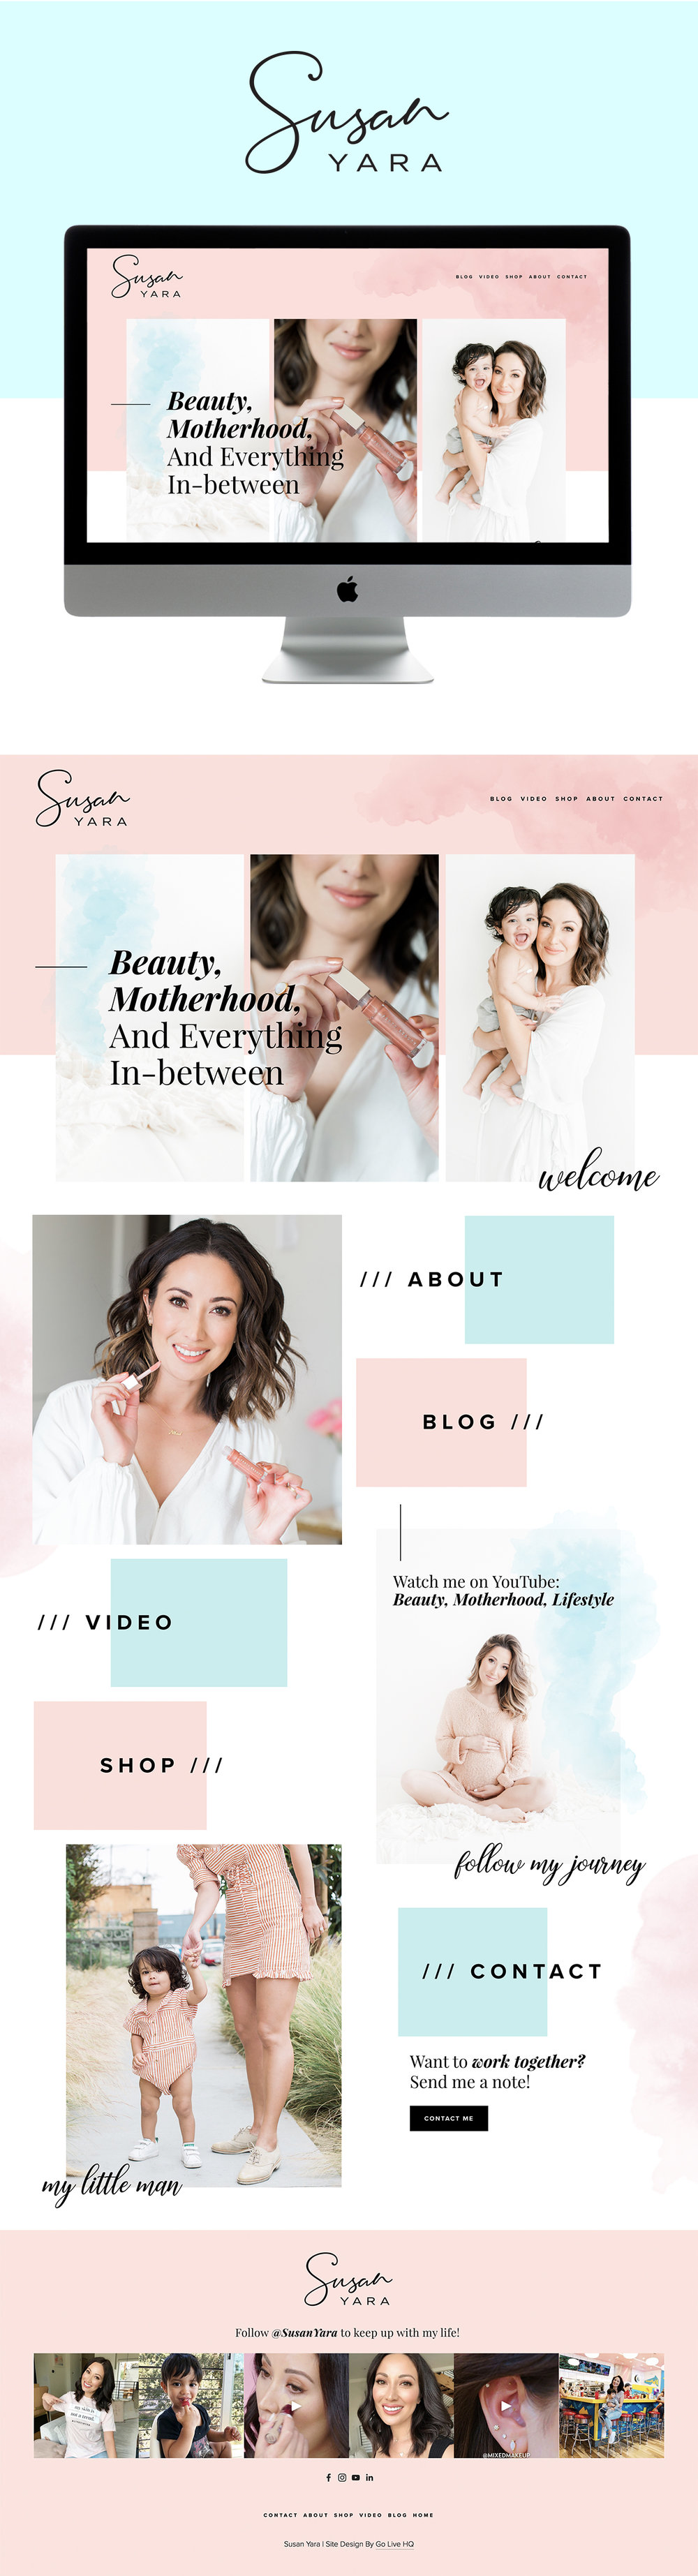 Colorful, Feminine, and Clean Website Design for Beauty and Lifestyle Blogger | Design by Go Live HQ